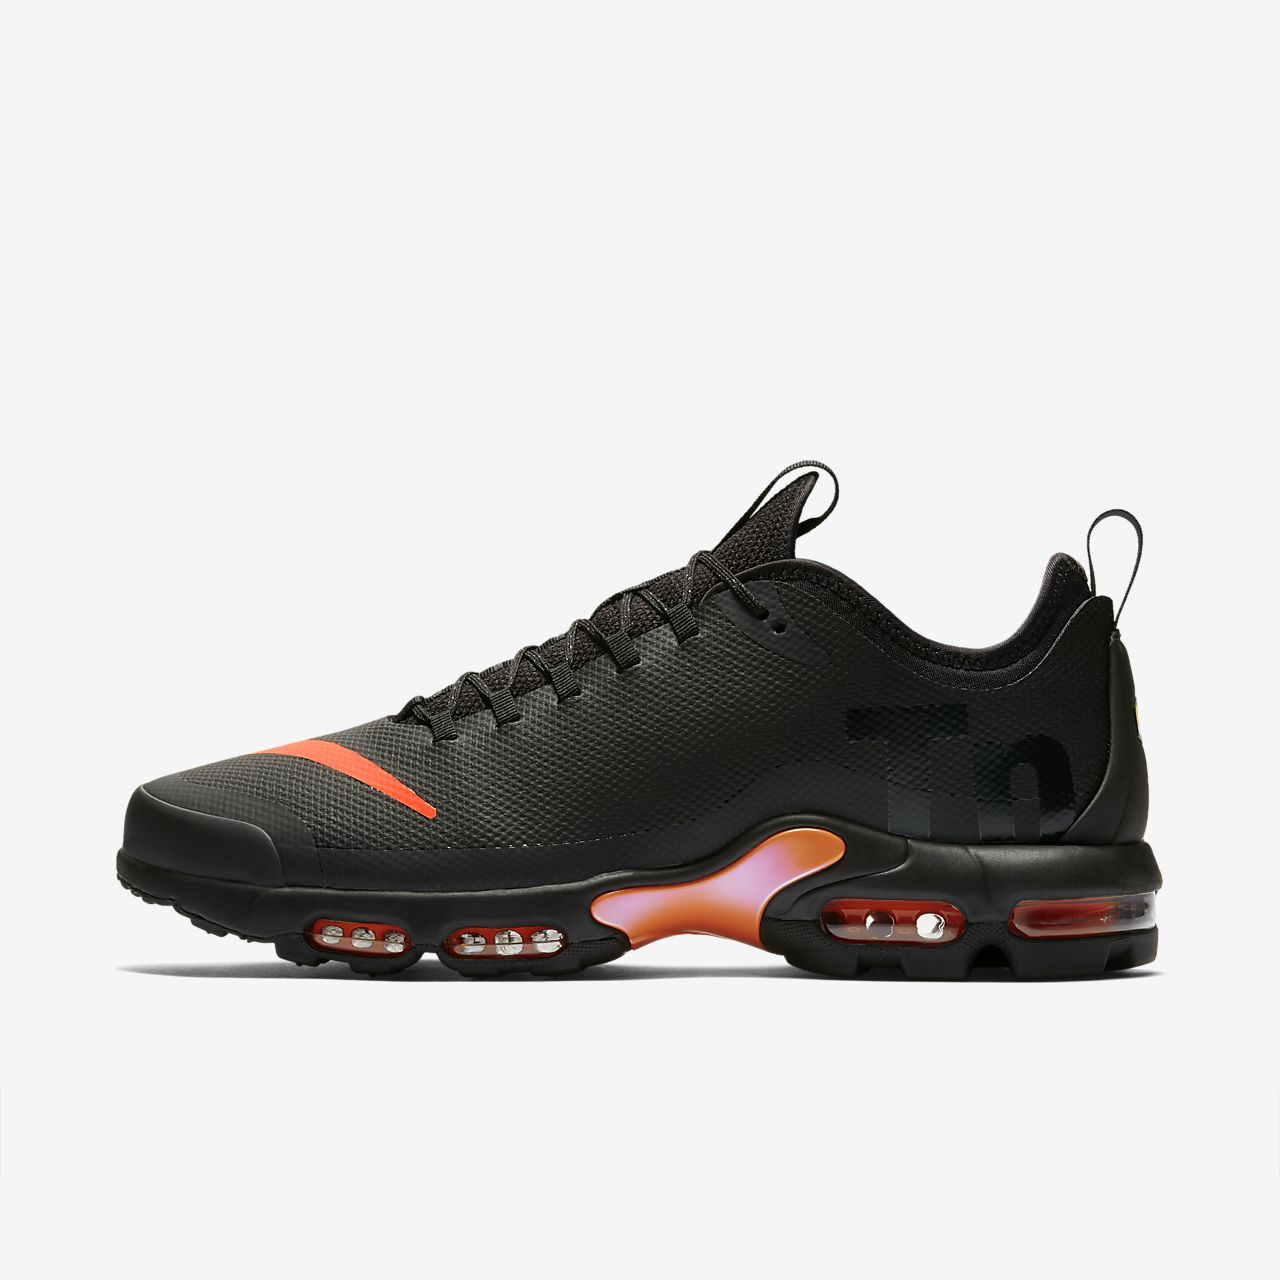 e7131e048e0 US  85 - Nike Air Max Plus TN Ultra SE - www.footarget.com